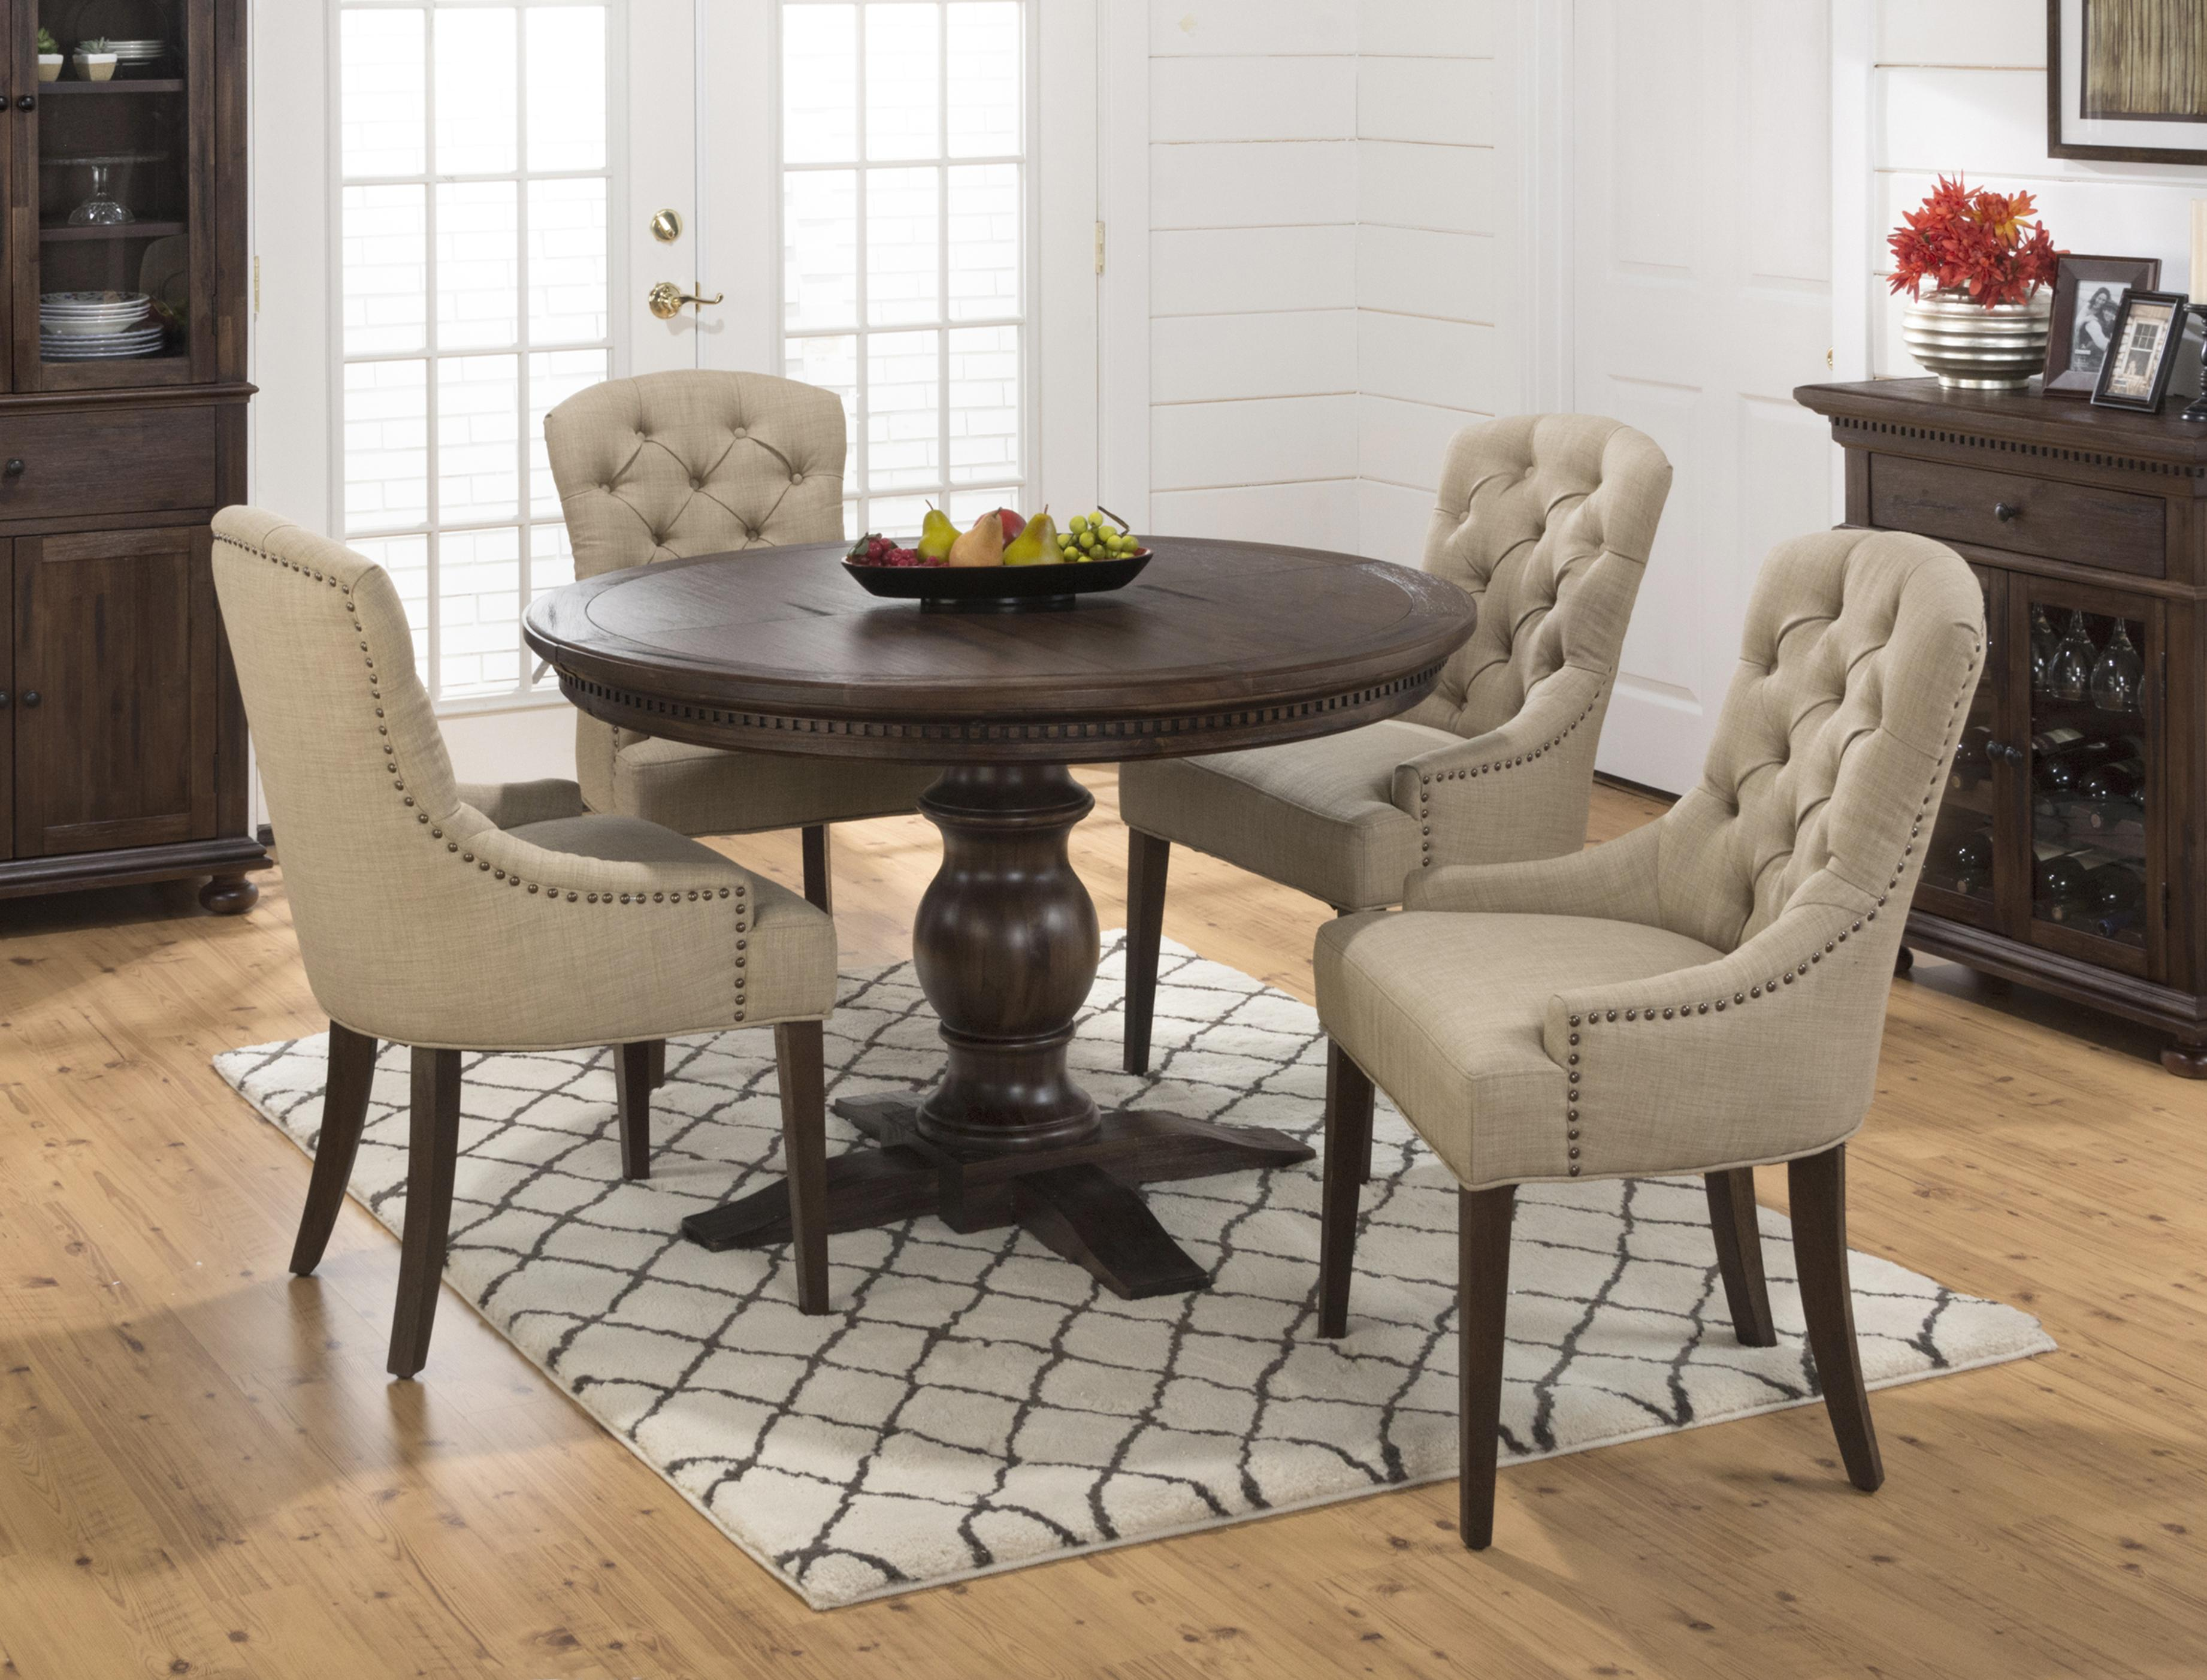 Evelyn Wire-Brushed Dining Table that Seats 6 with Removable Leaf | Rotmans | Dining Tables Worcester Boston MA Providence RI and New England & Evelyn Wire-Brushed Dining Table that Seats 6 with Removable Leaf ...